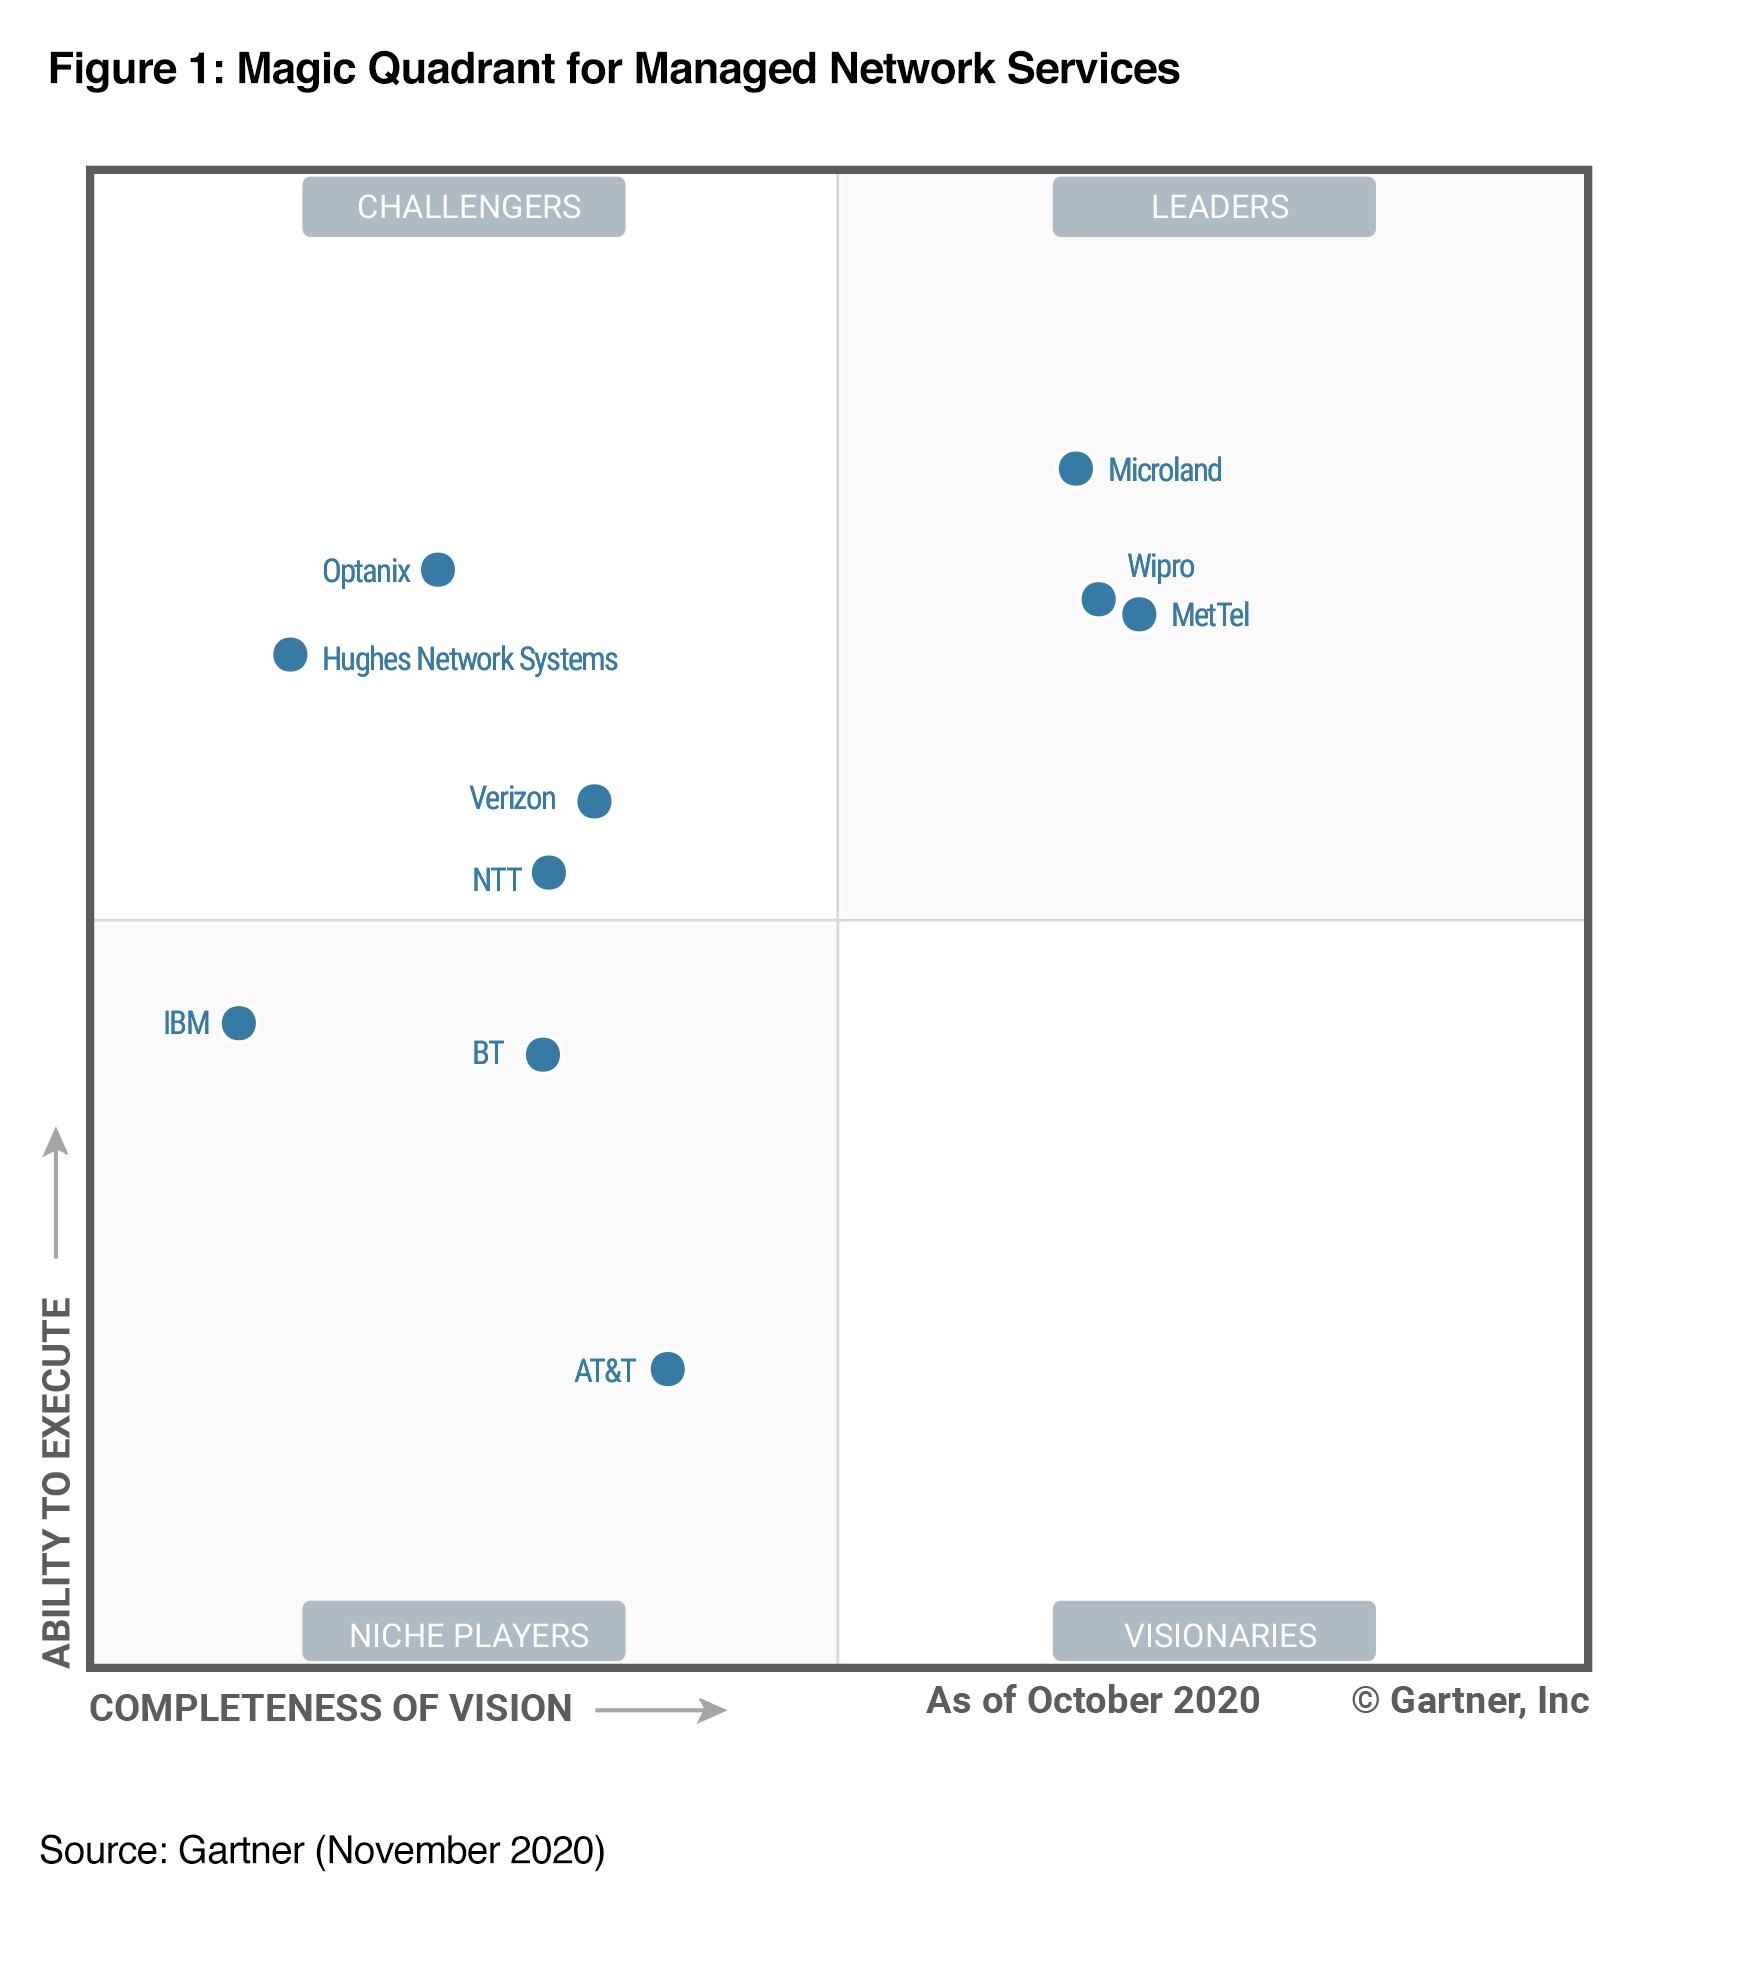 Optanix Magic Quadrant for Managed Network Services